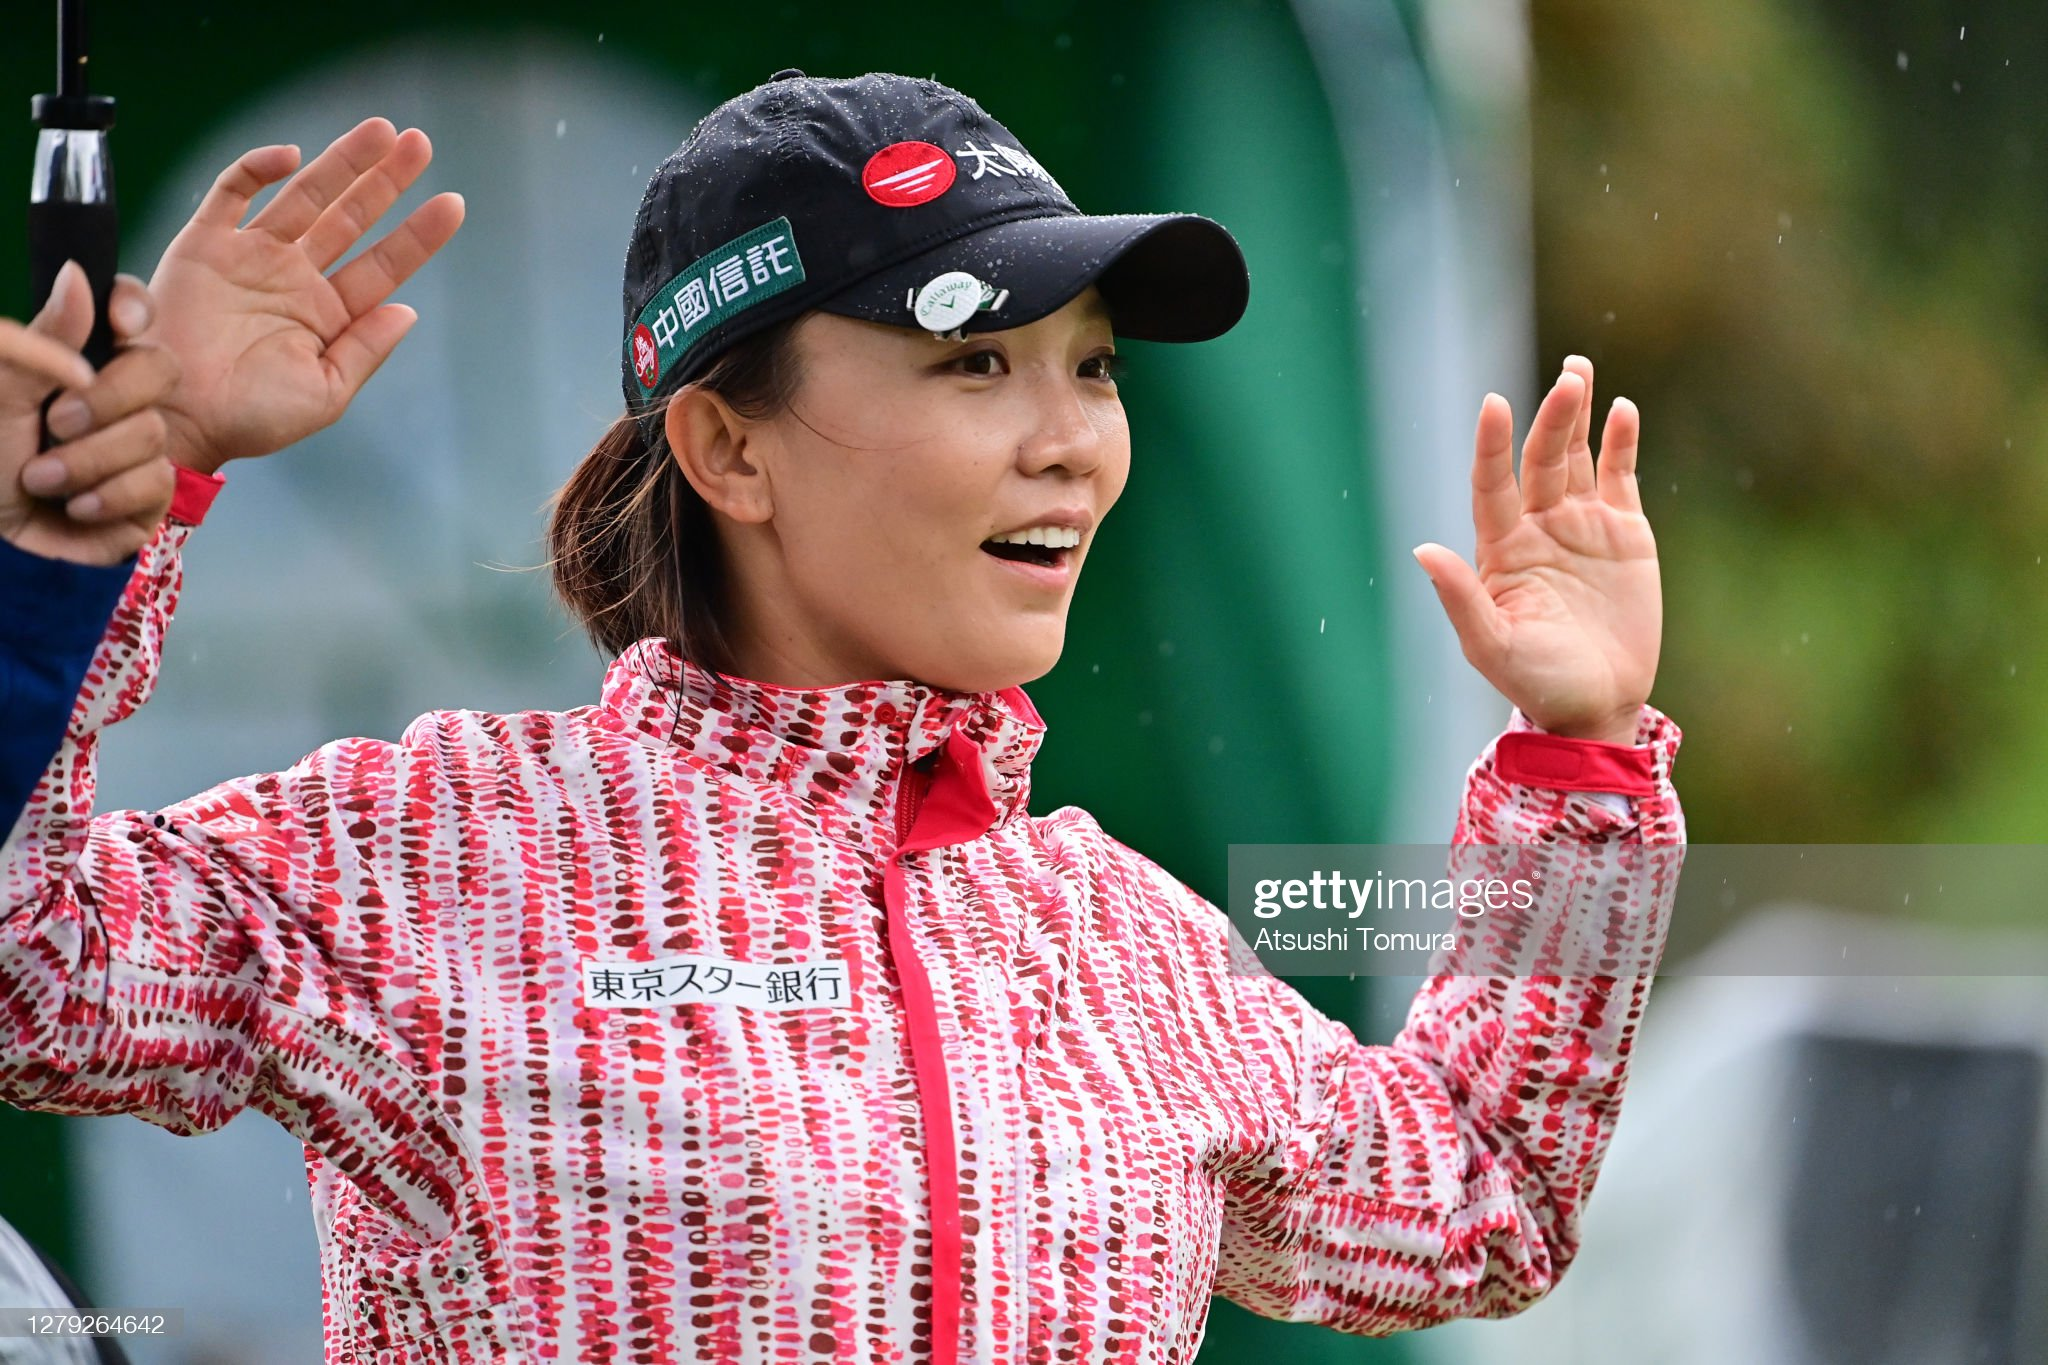 https://media.gettyimages.com/photos/teresa-lu-of-chinese-taipei-warms-up-on-the-1st-tee-during-the-first-picture-id1279264642?s=2048x2048